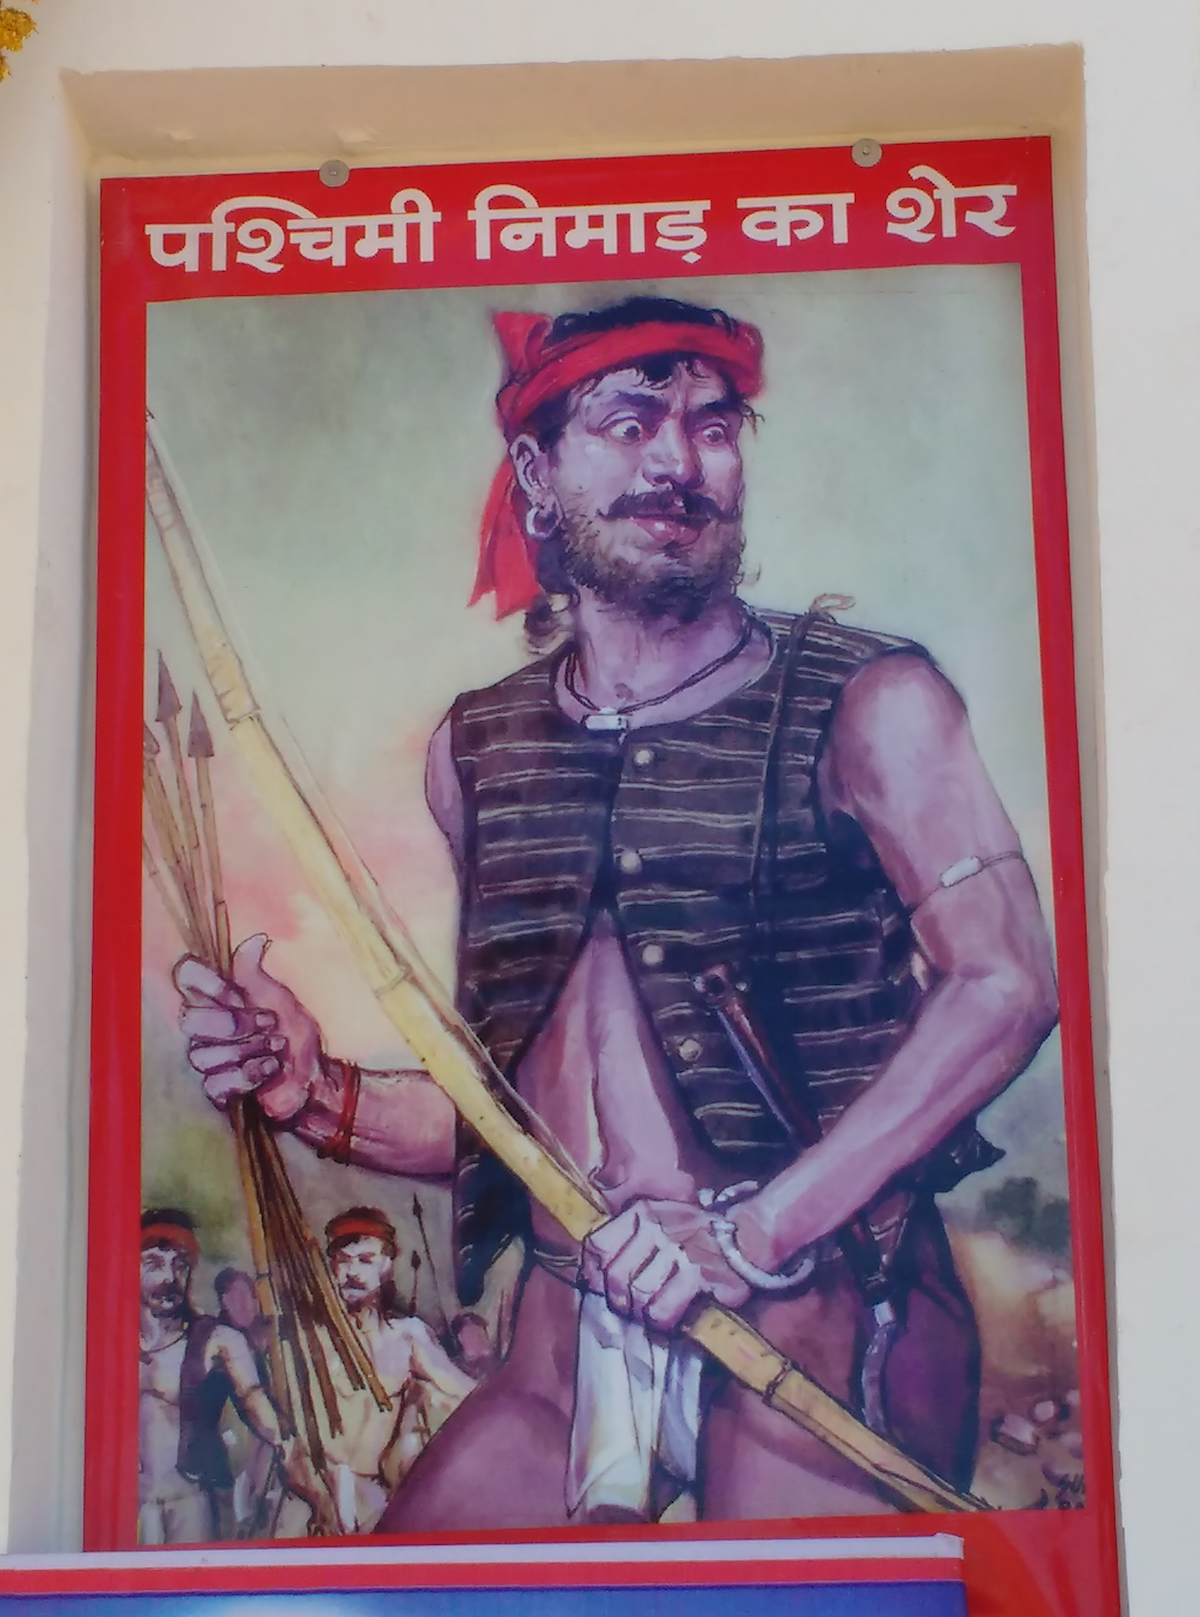 Tiger of Western Nimar : Flex portraying images of Tantiya mama and Bhima Naik